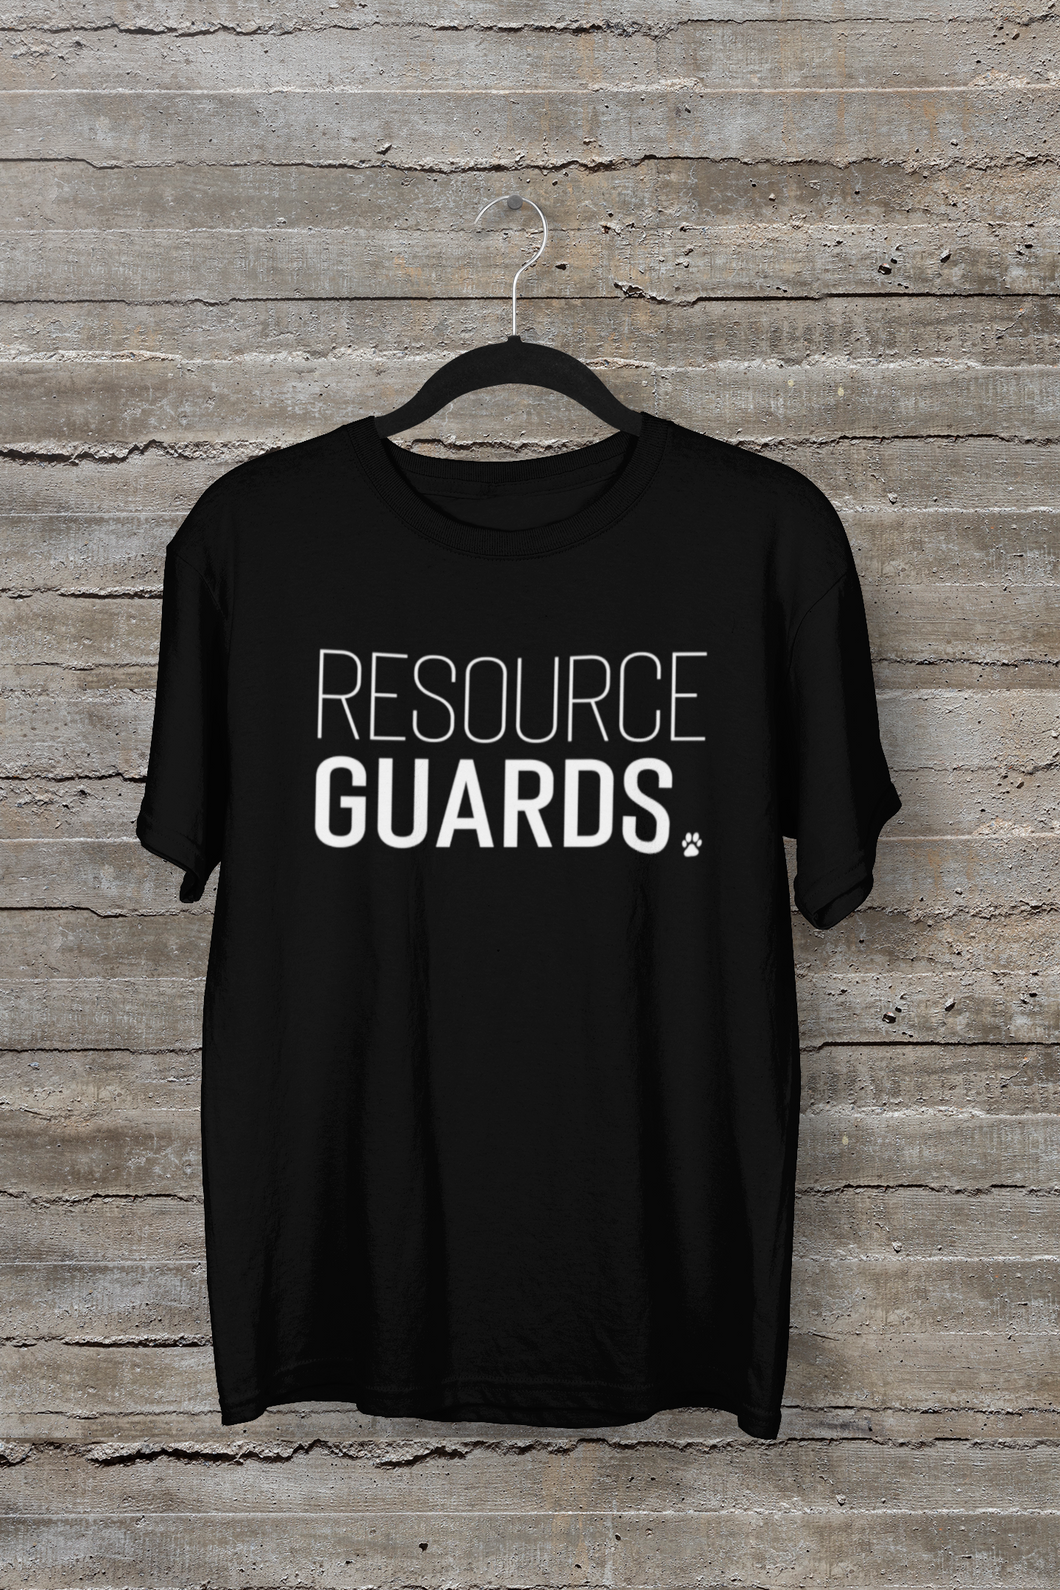 Resource Guards Men's/Unisex or Women's T-shirt